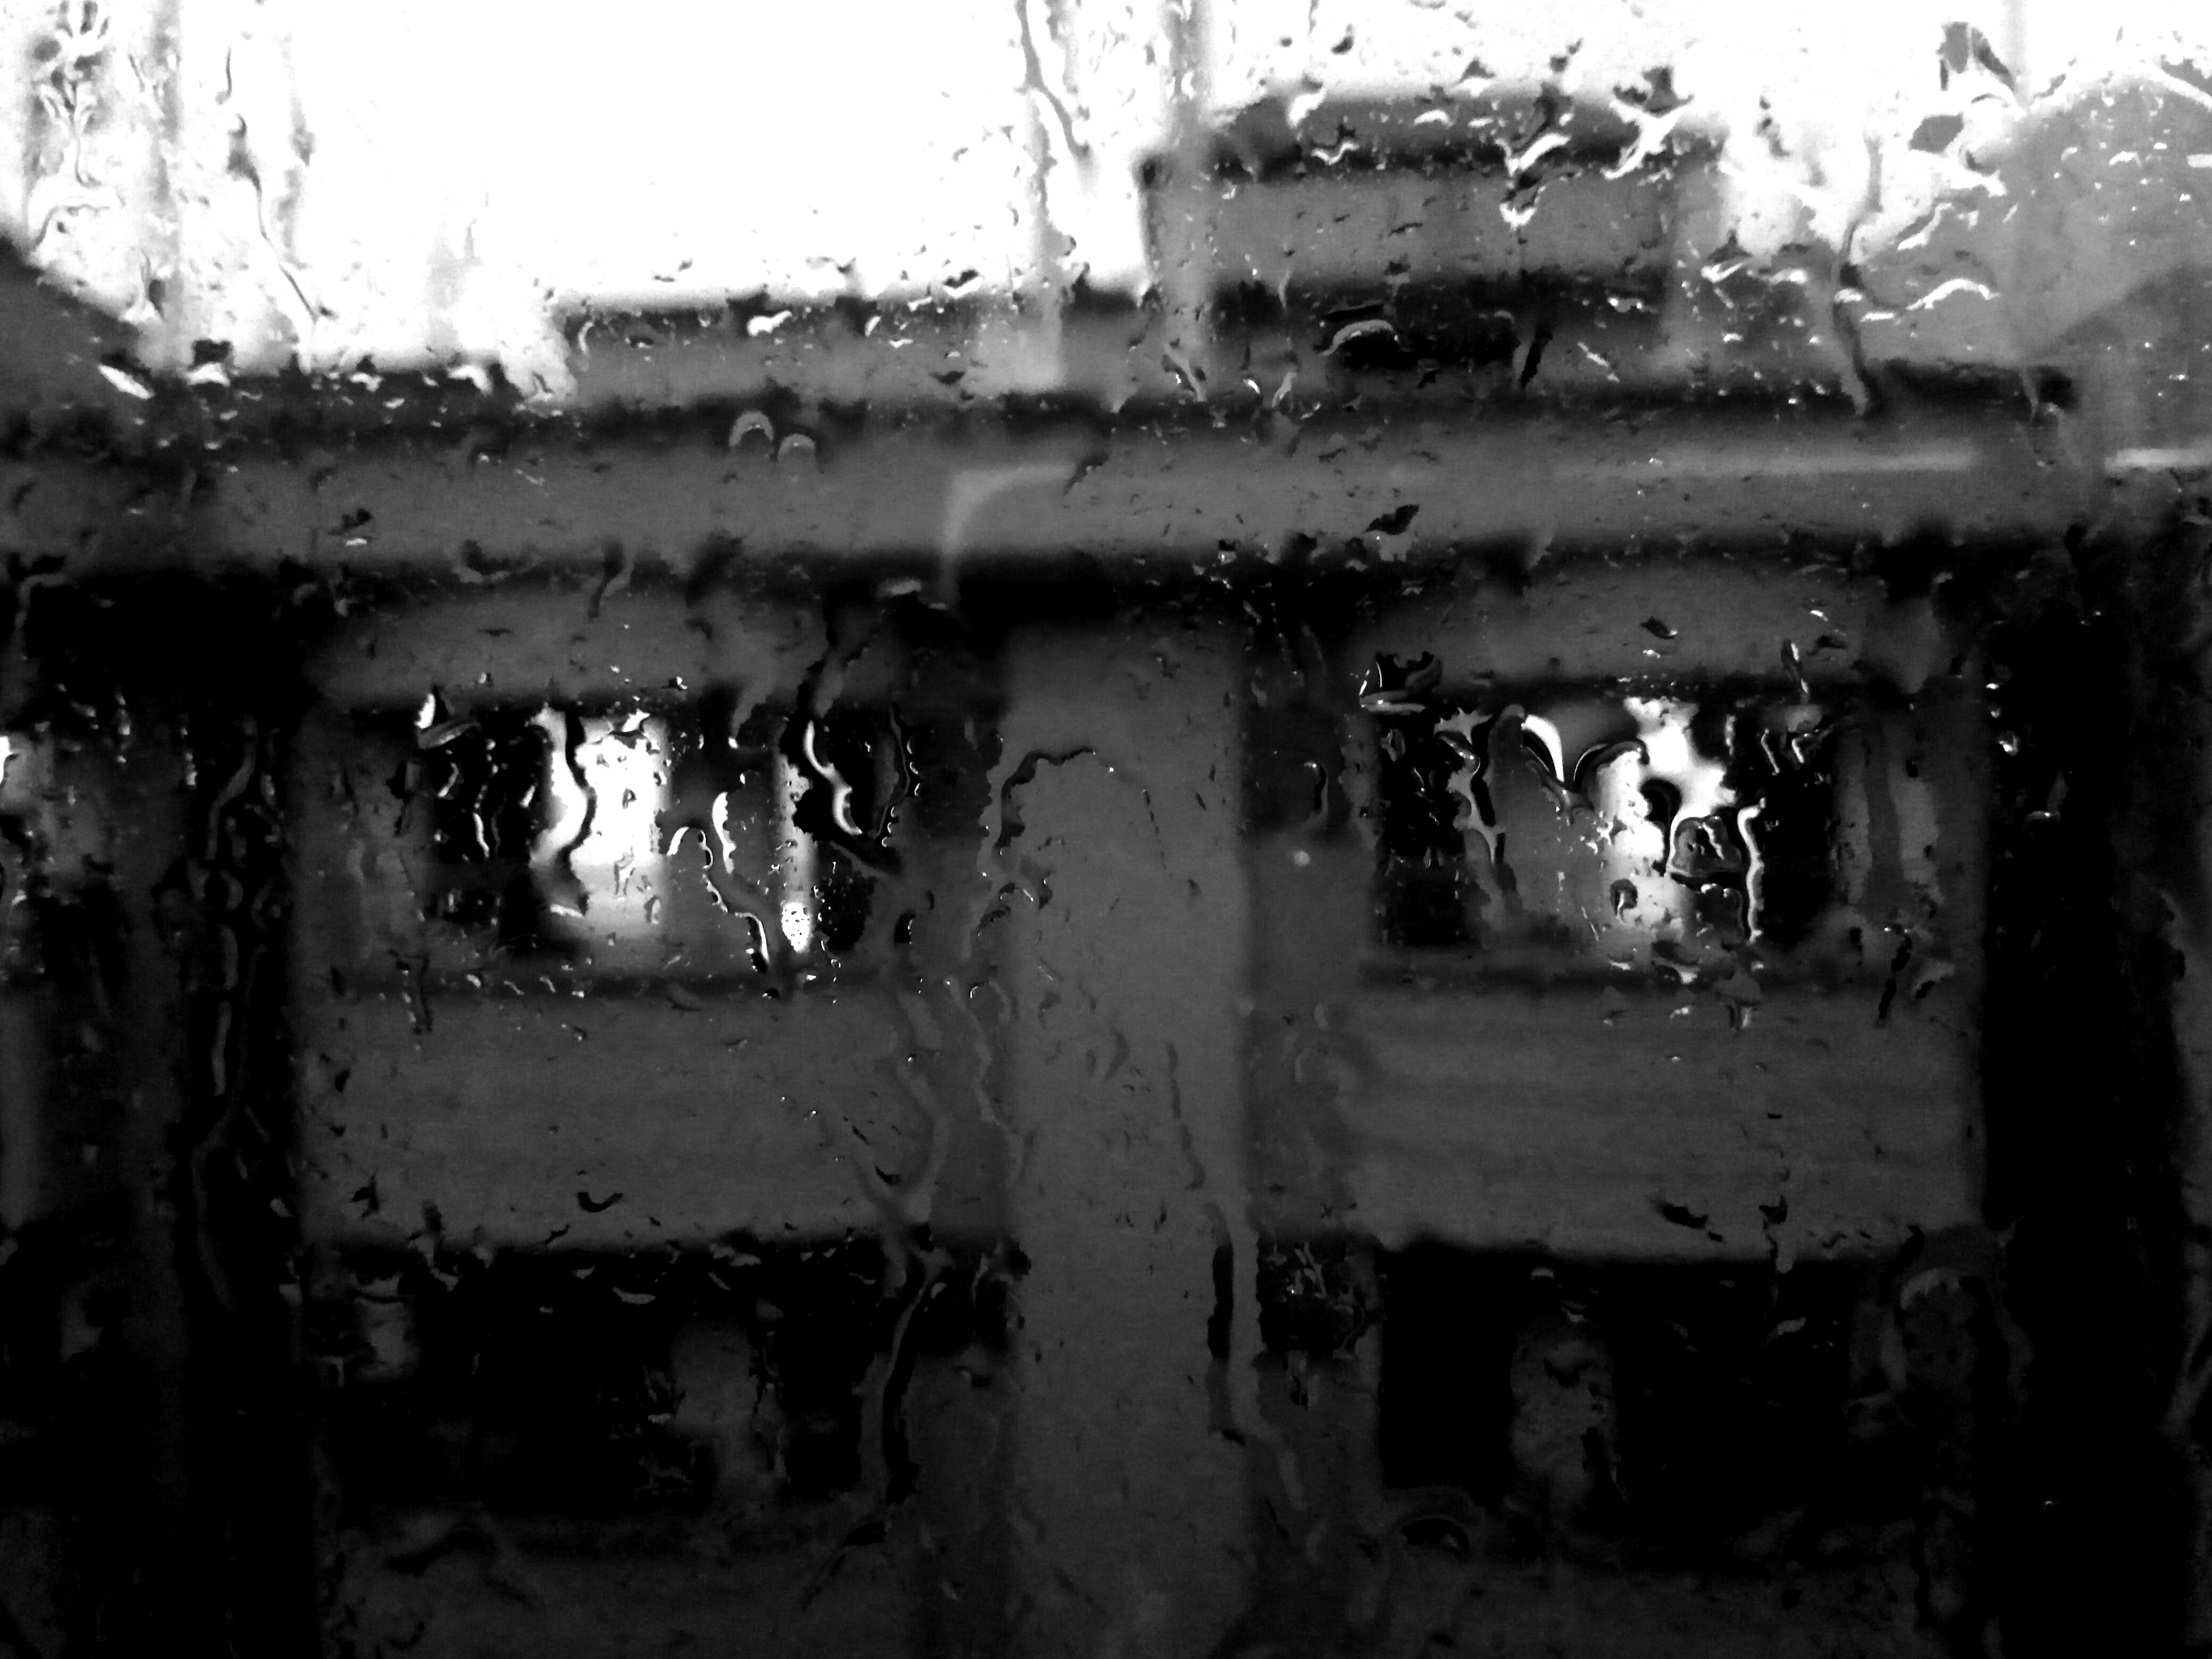 Rain Pouring on Glass Window